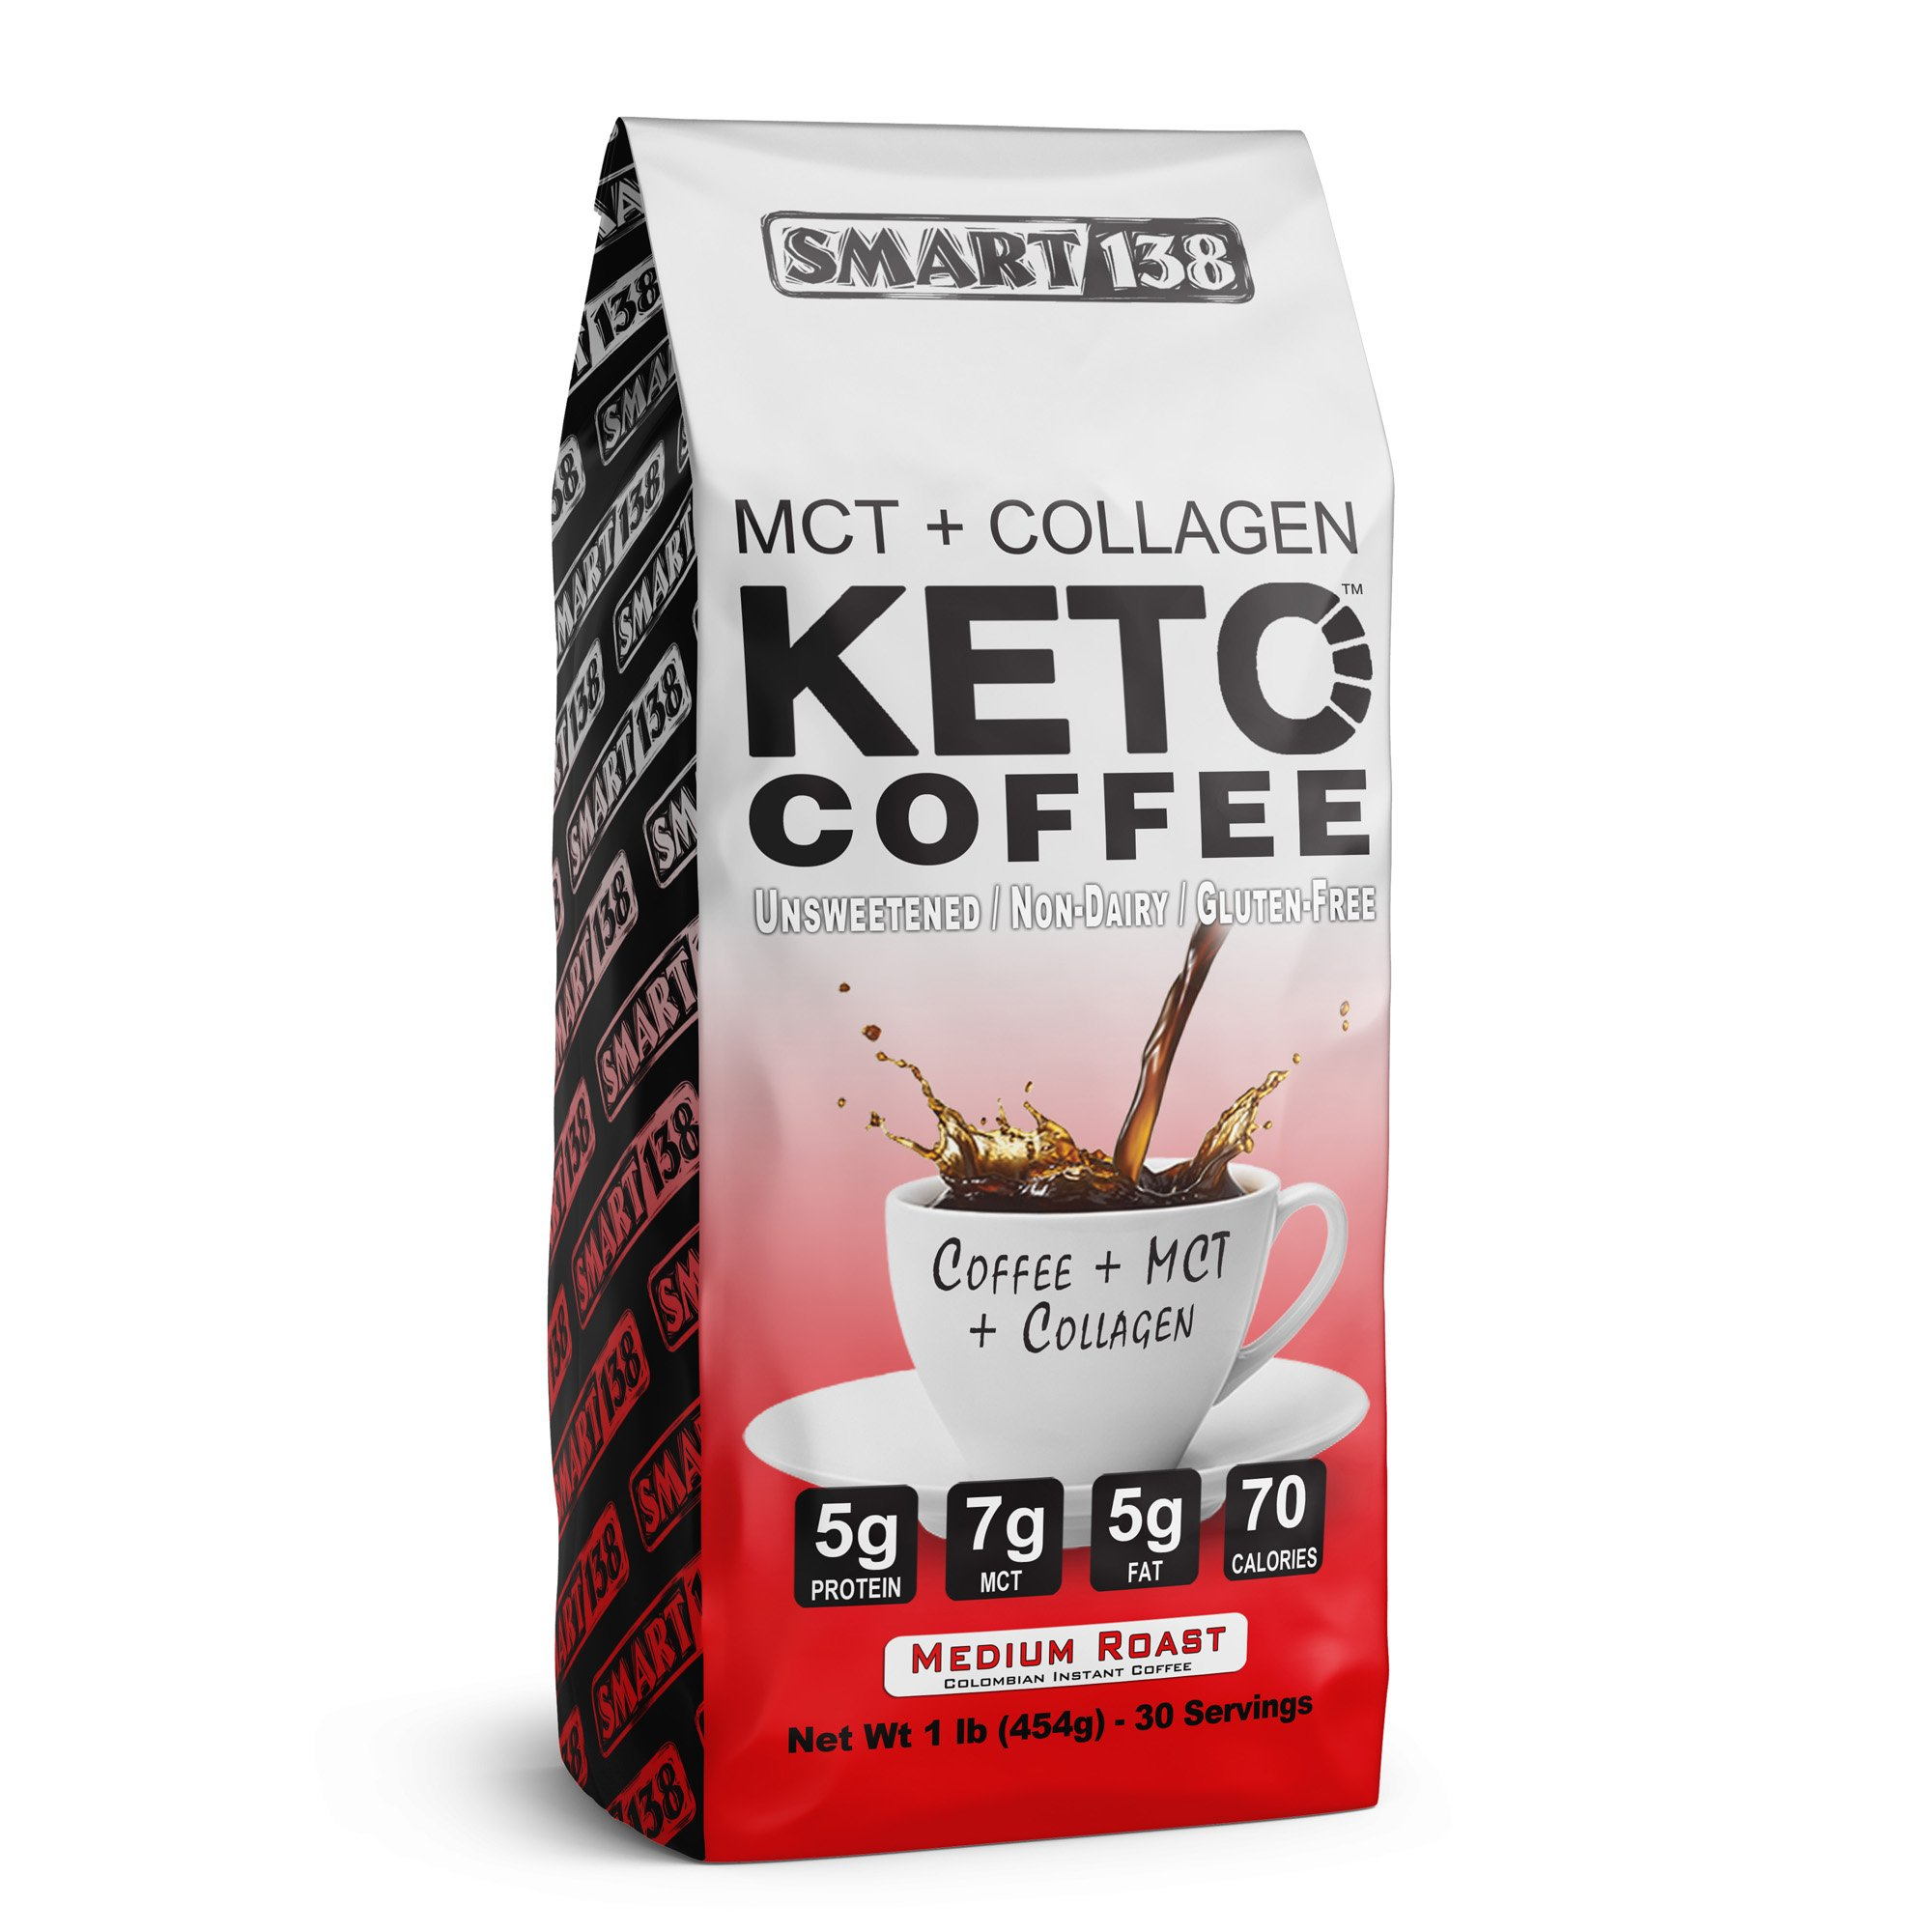 Keto Coffee - Zero Sugar, Colombian Instant Coffee, Non-Dairy, Gluten Free, Ketogenic/Paleo Diet Approved, 125mg Caffeine (16oz /30 Servings)